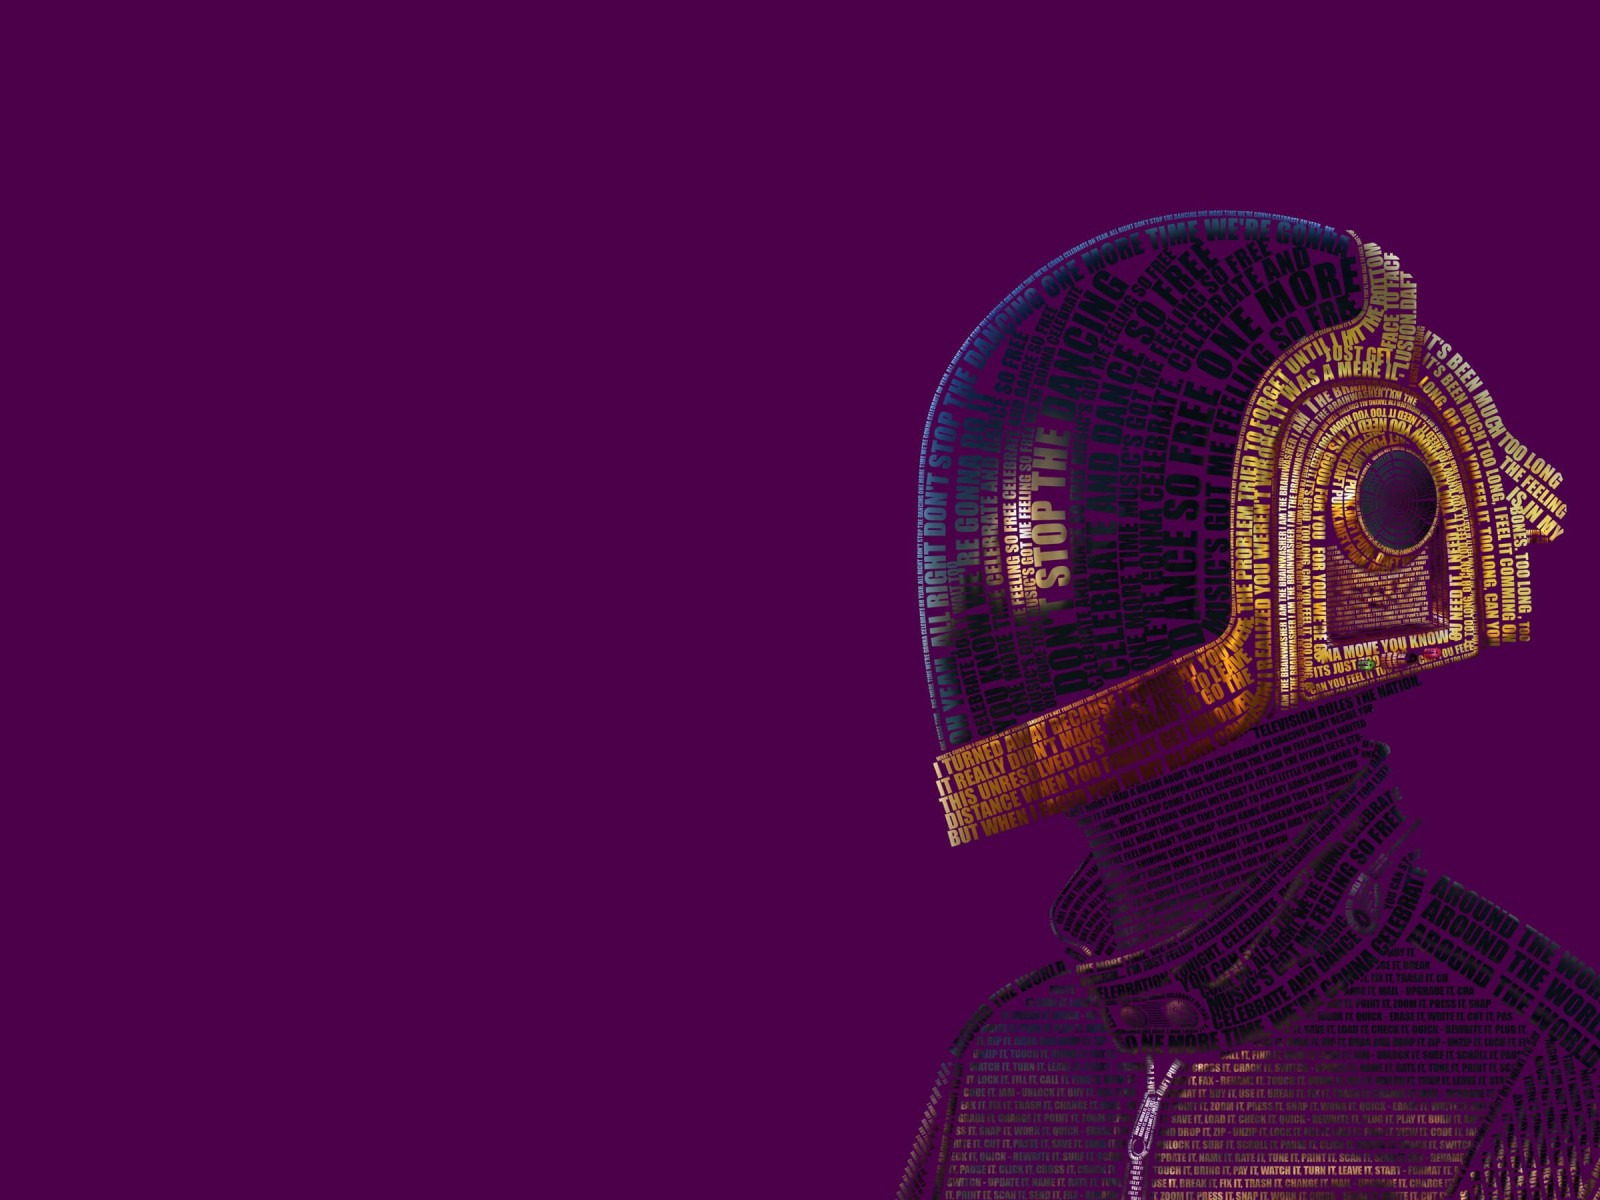 Daft Punk Typographic Portrait Wallpaper for Desktop 1600x1200